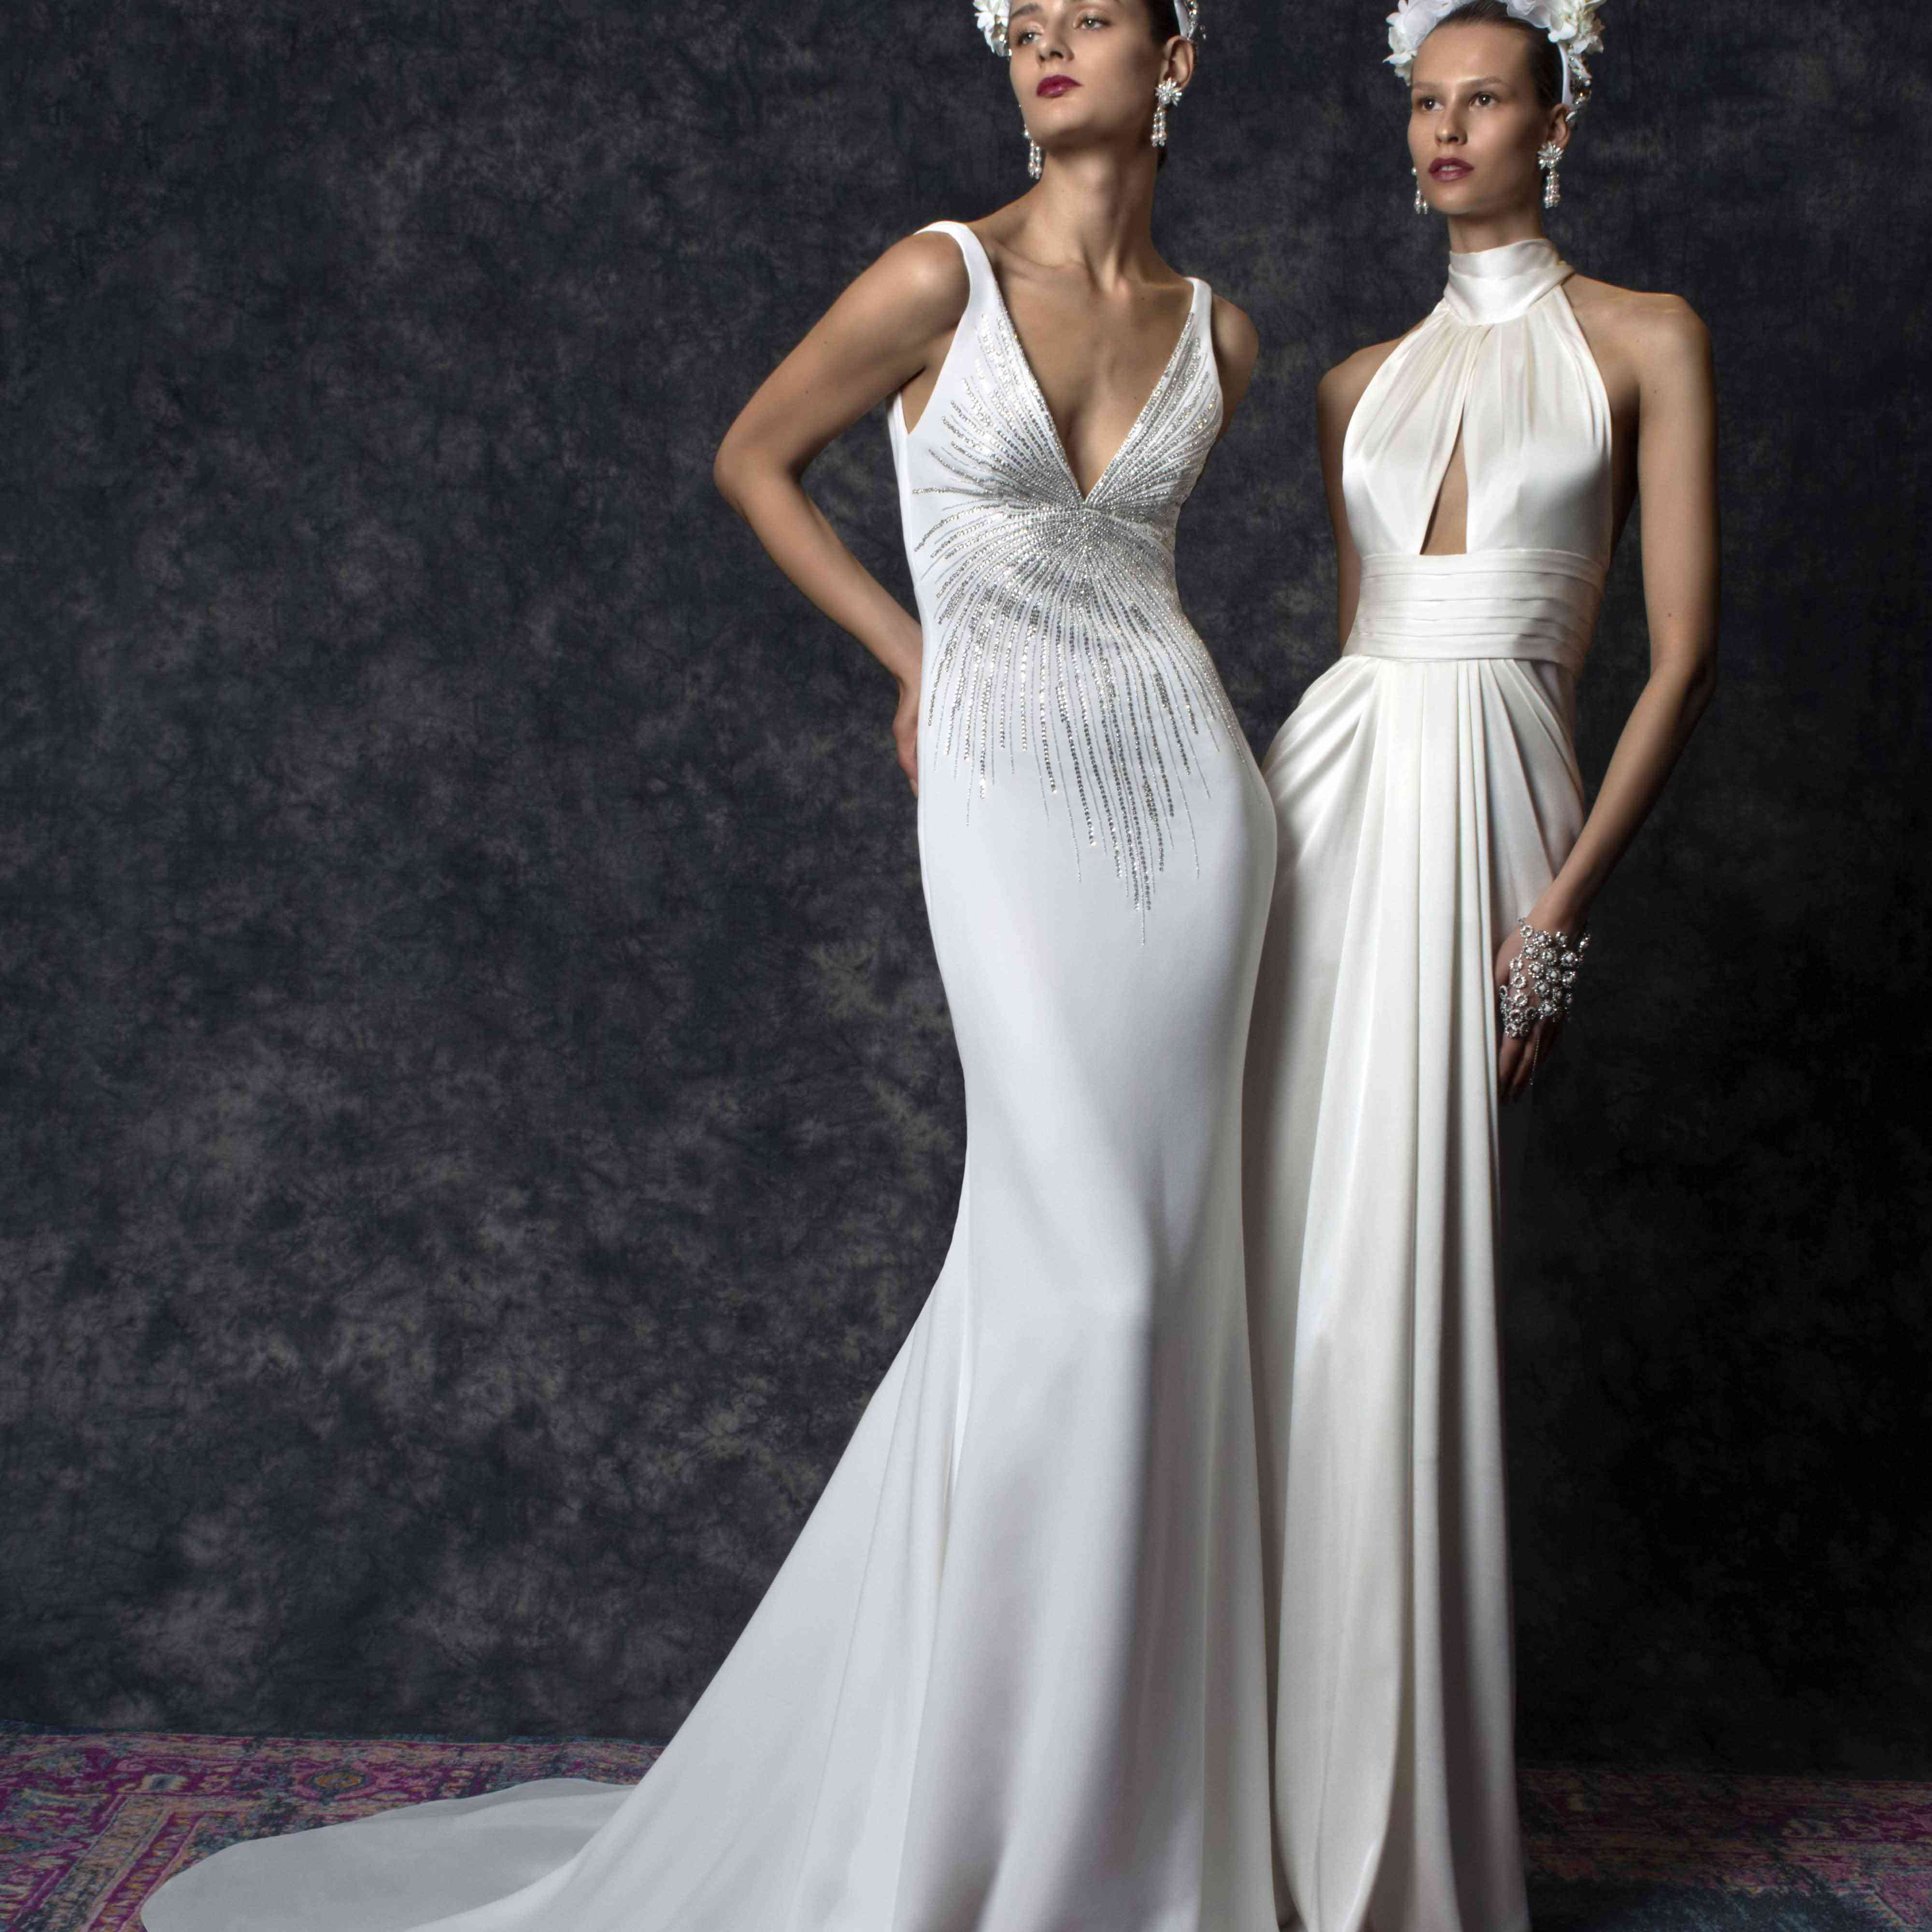 Two models side-by-side in white wedding gowns